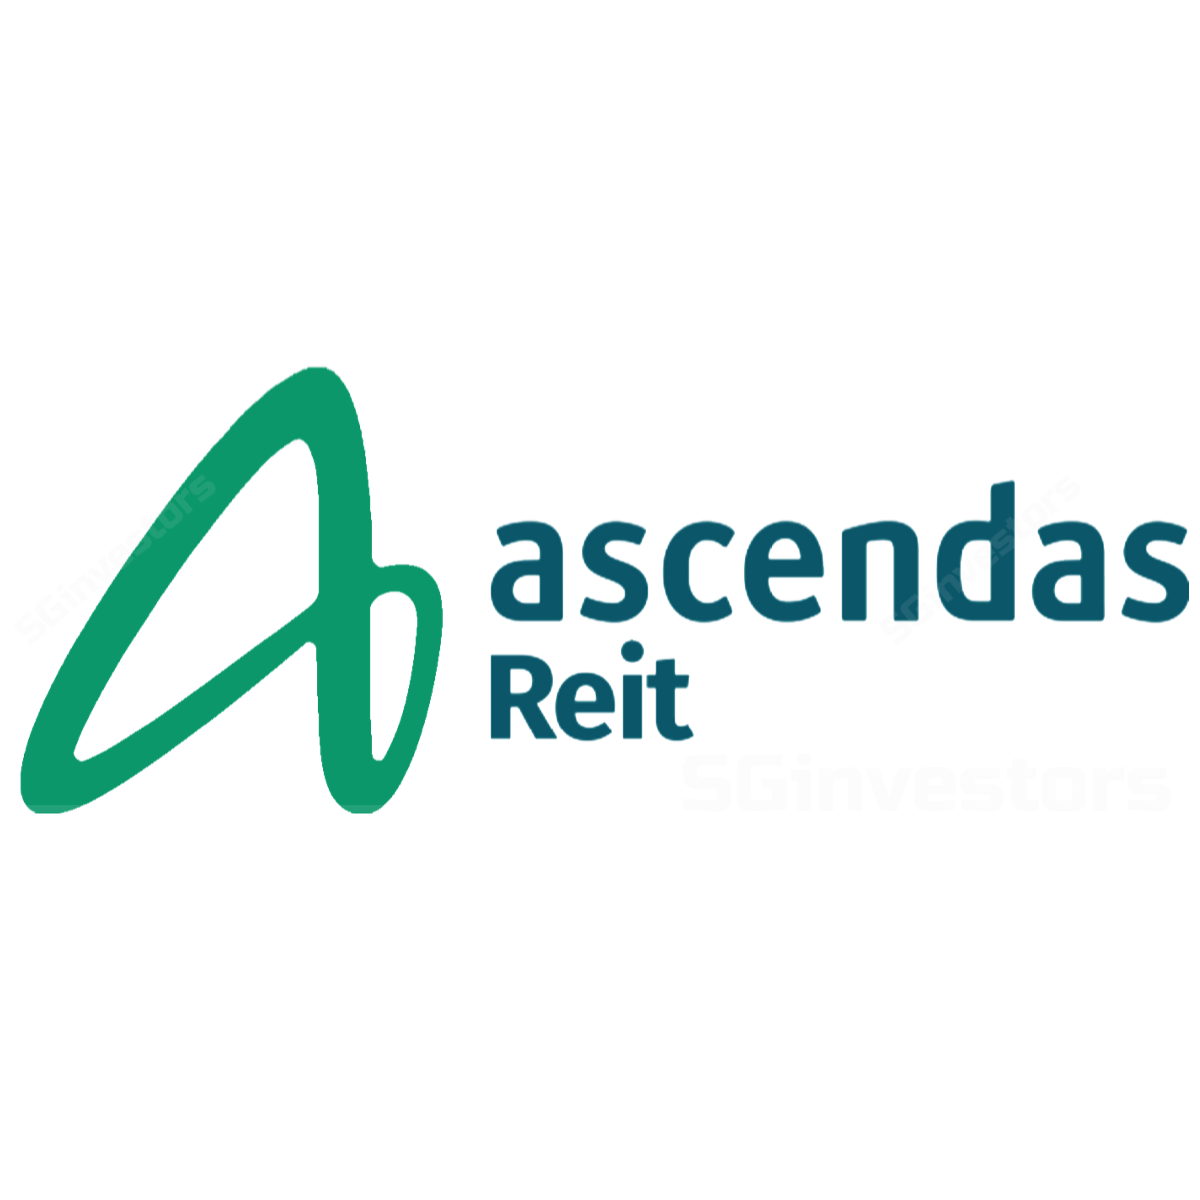 Ascendas REIT - Phillip Securities 2017-07-14: Growth Through Rebalancing, Stability Through Diversification